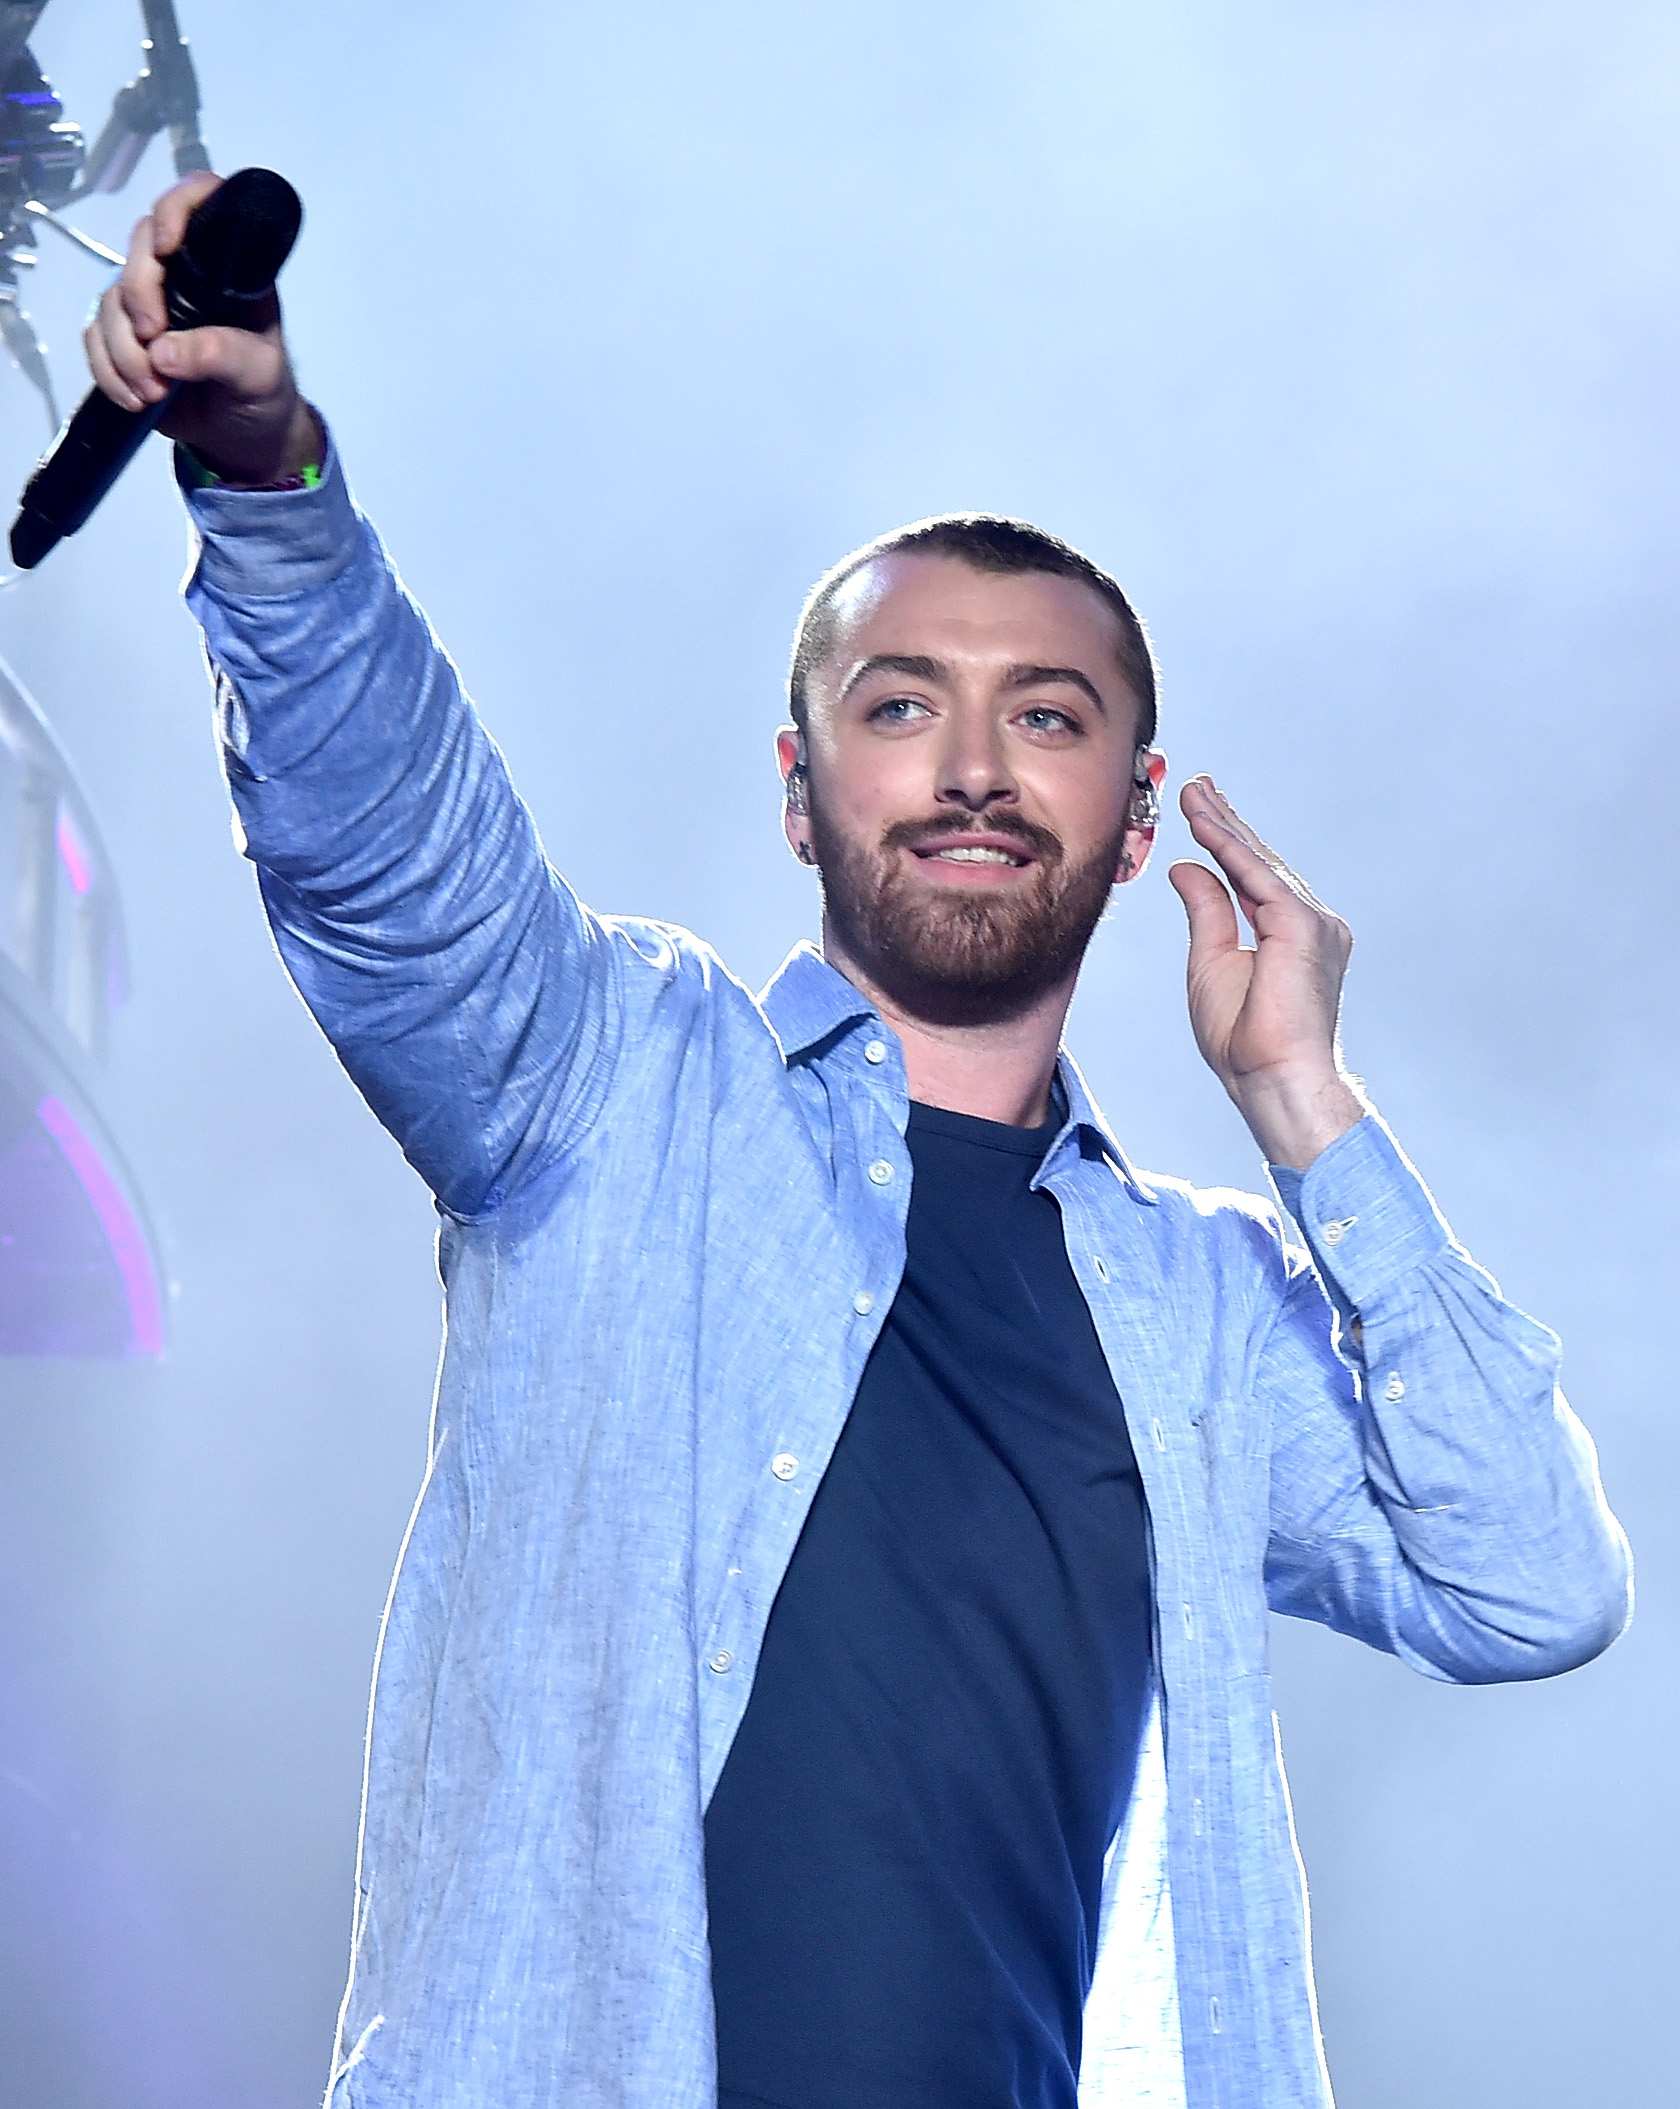 Sam Smith at 2016 Coachella Valley Music And Arts